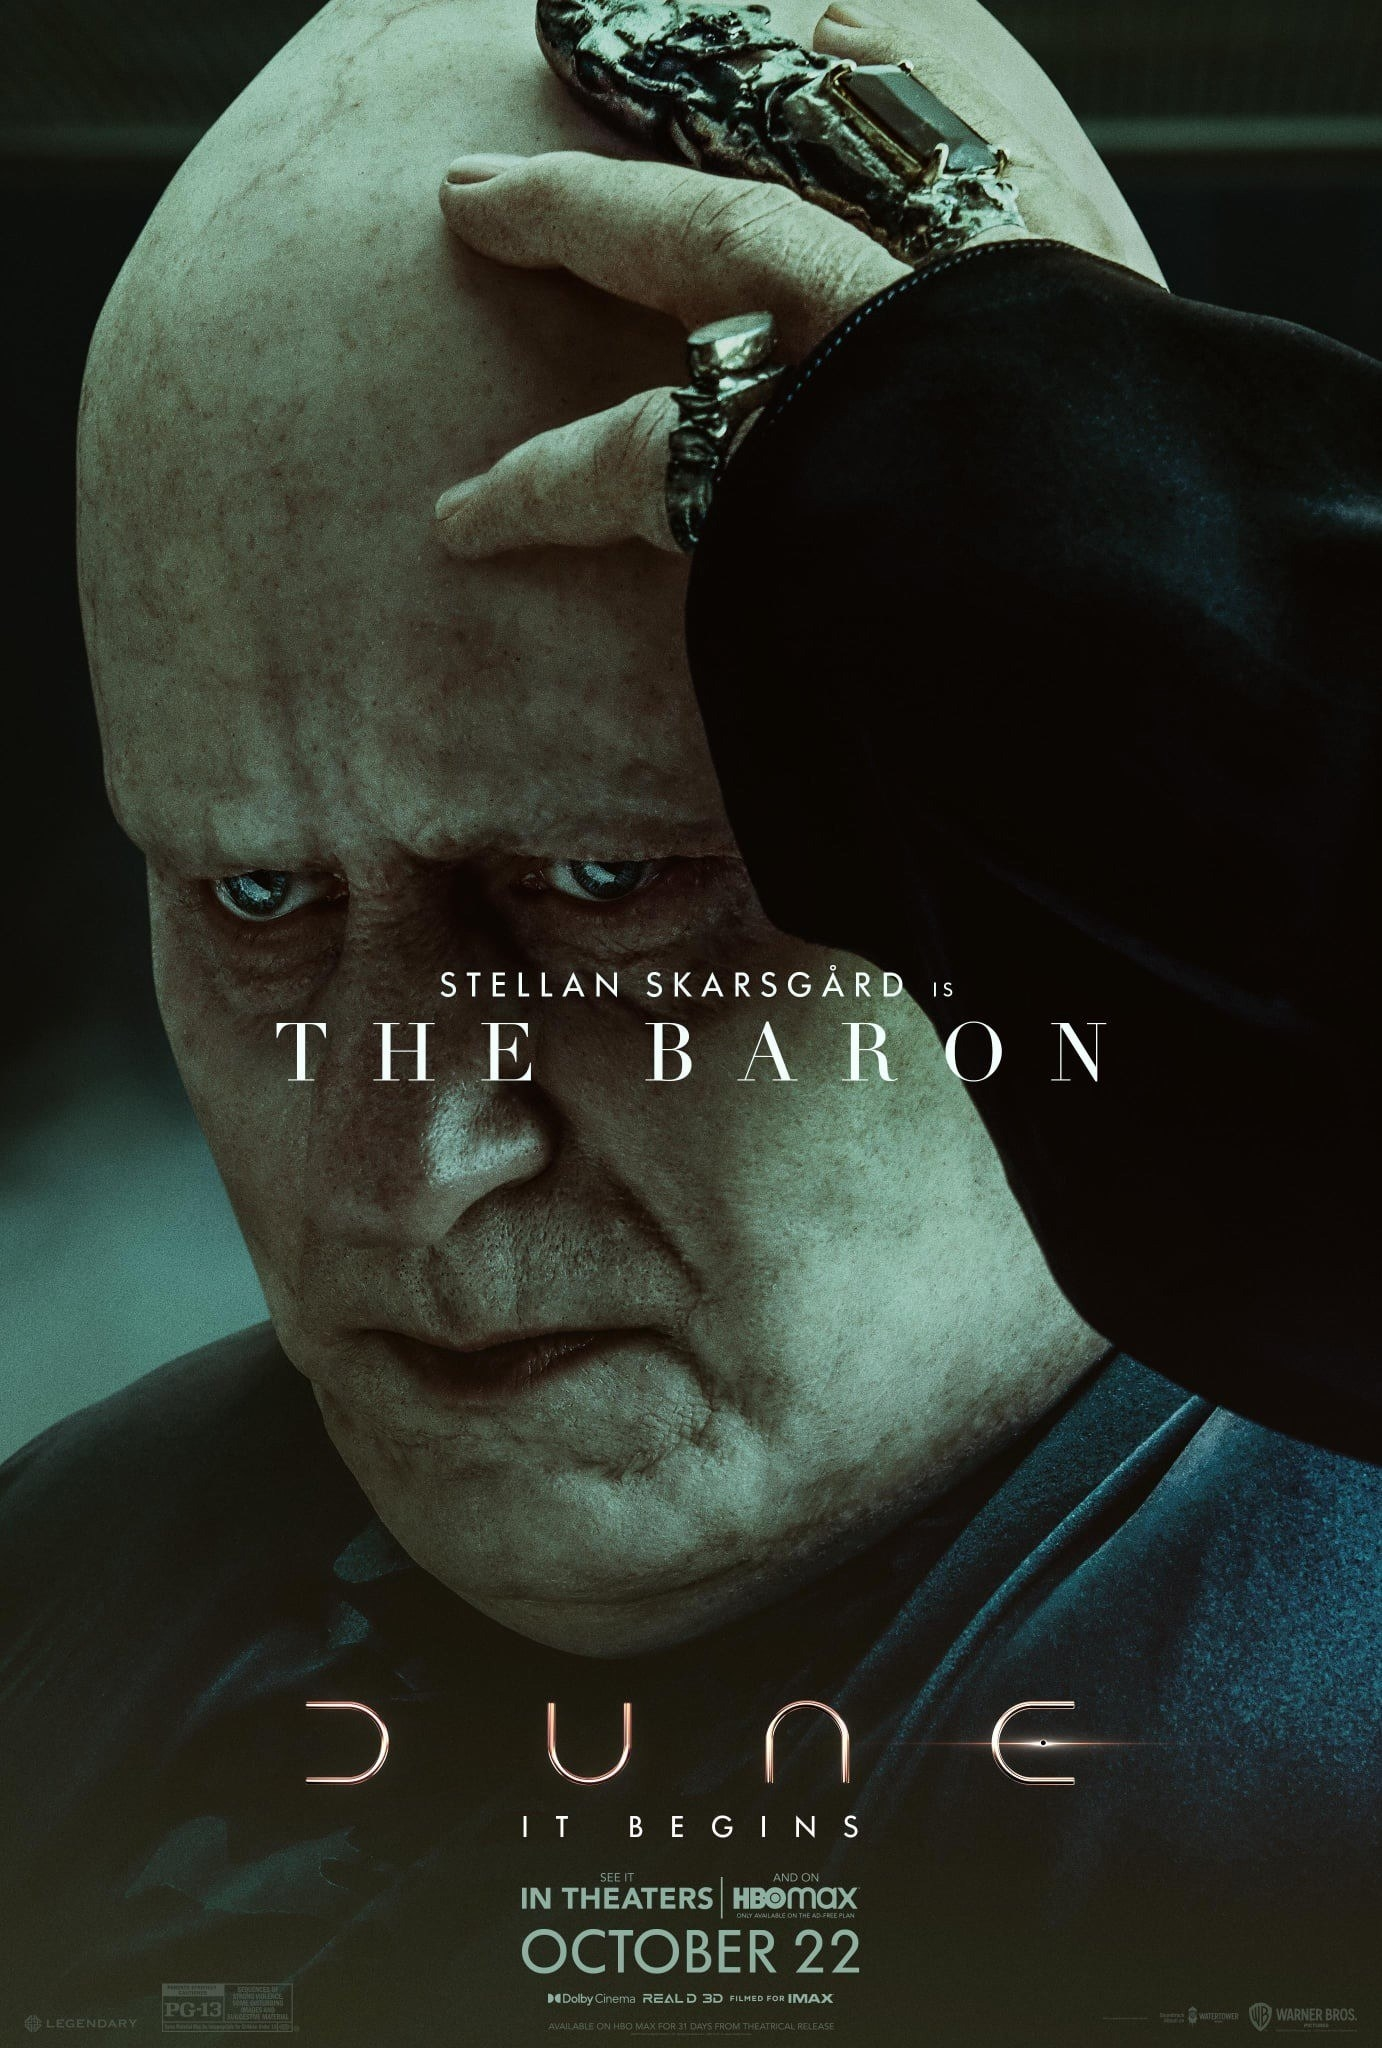 """Promotional poster for """"Dune"""" featuring the writing """"Stellan Skarsgård is The Baron,"""" """"Dune,"""" and """"It begins"""" in all capital letters, the poster also includes the release date Oct. 22 with the words """"in theaters"""" and """"HBO Max"""" in all caps"""